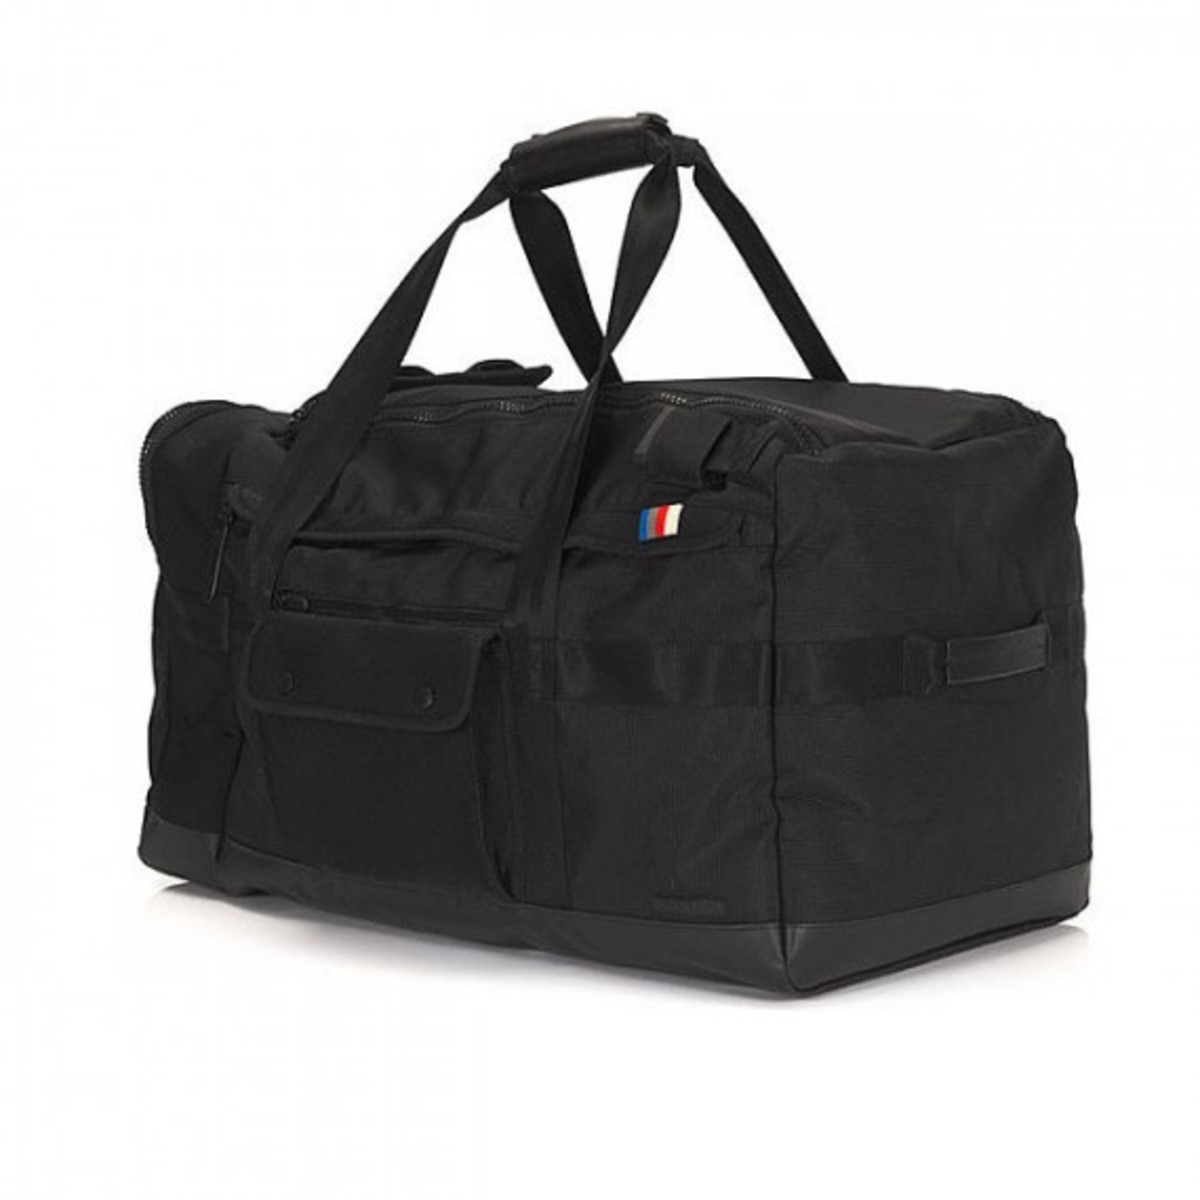 lexdray-tahoe-duffel-bag-02